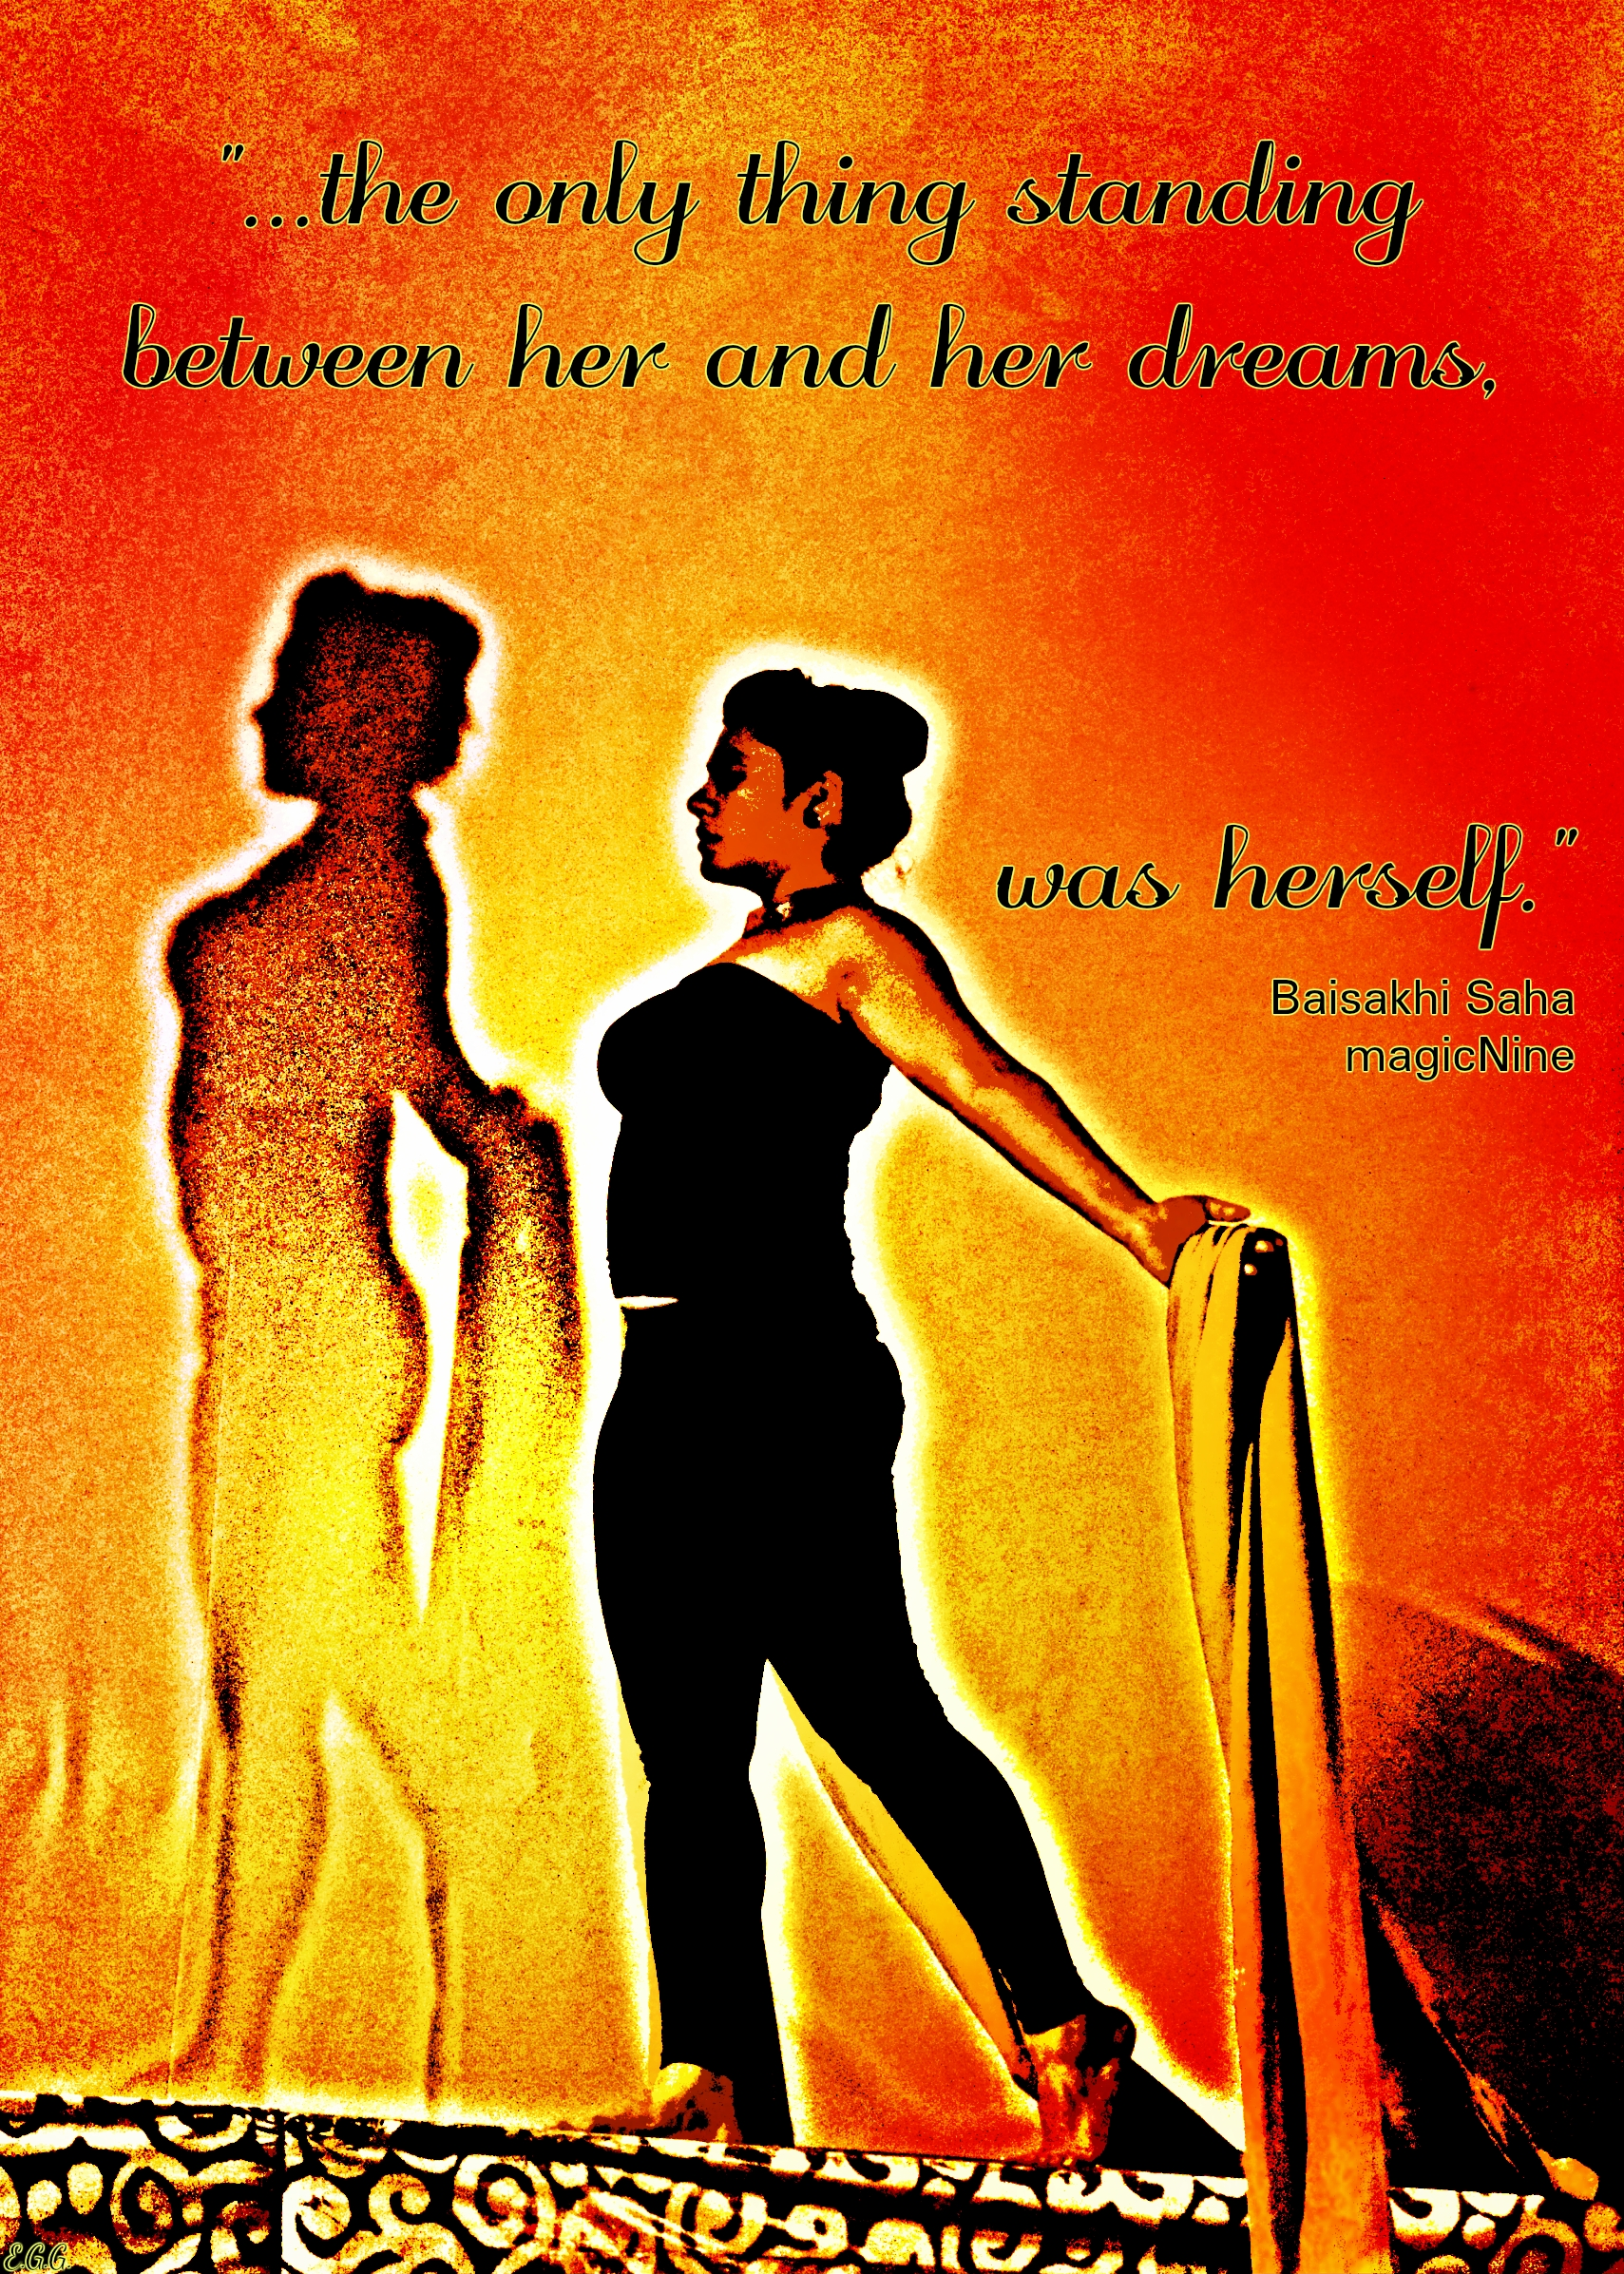 the only thing standing between her and her dreams, was herself